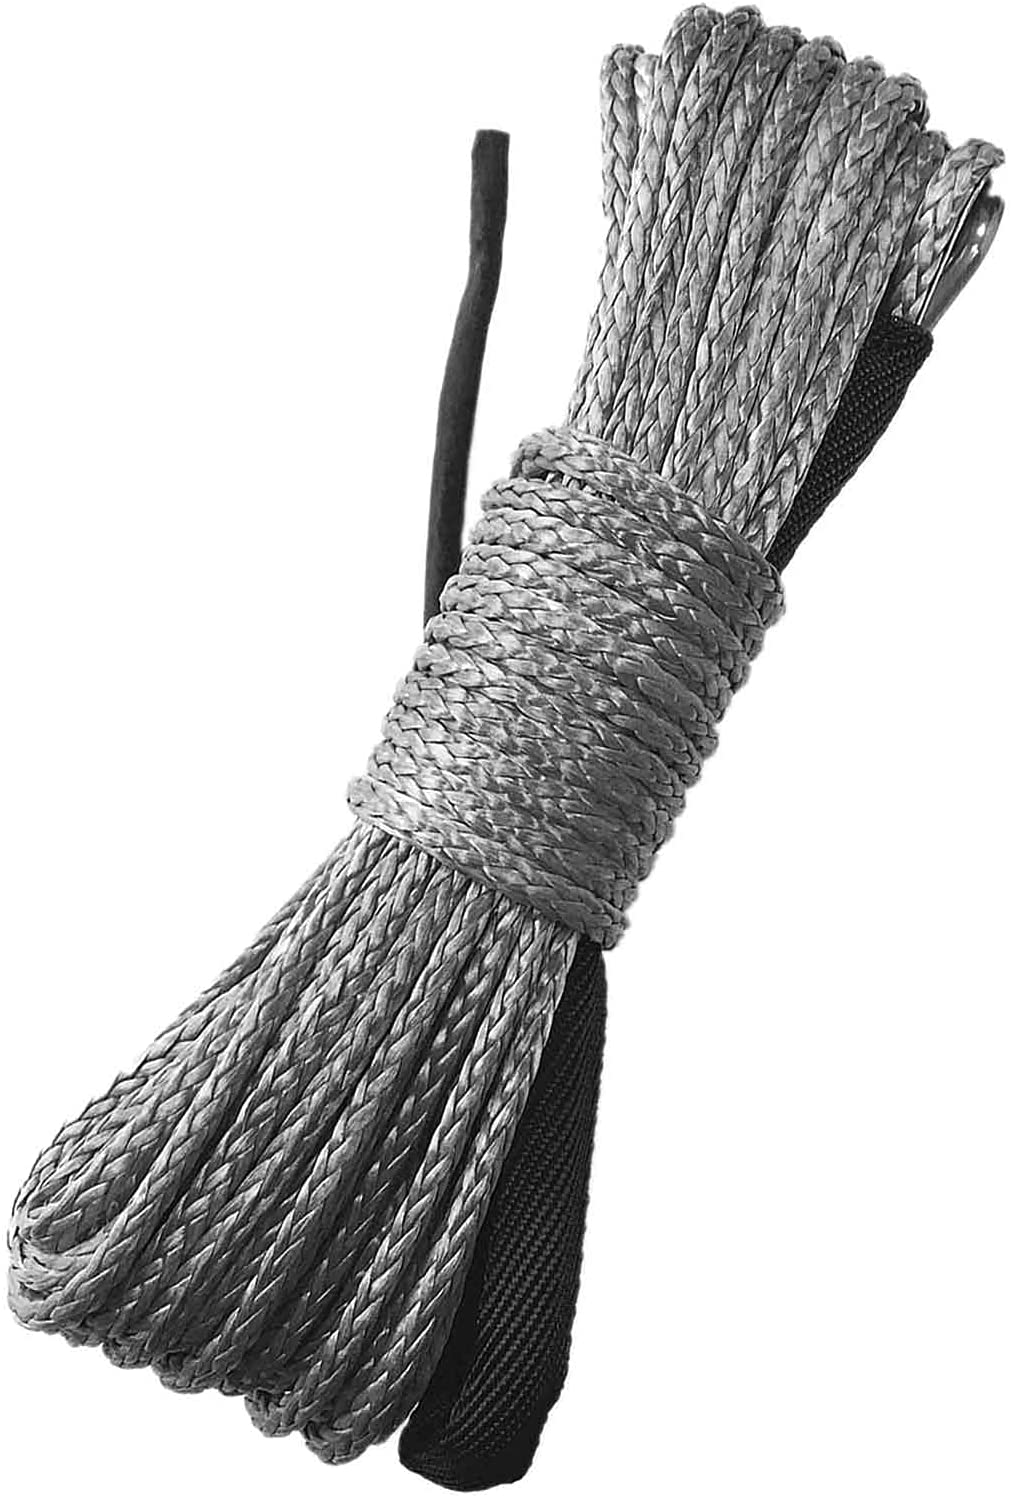 Synthetic Winch Rope National uniform free shipping 1 4 Inch x Black with 7700LBs Proteci 50 ft Super special price